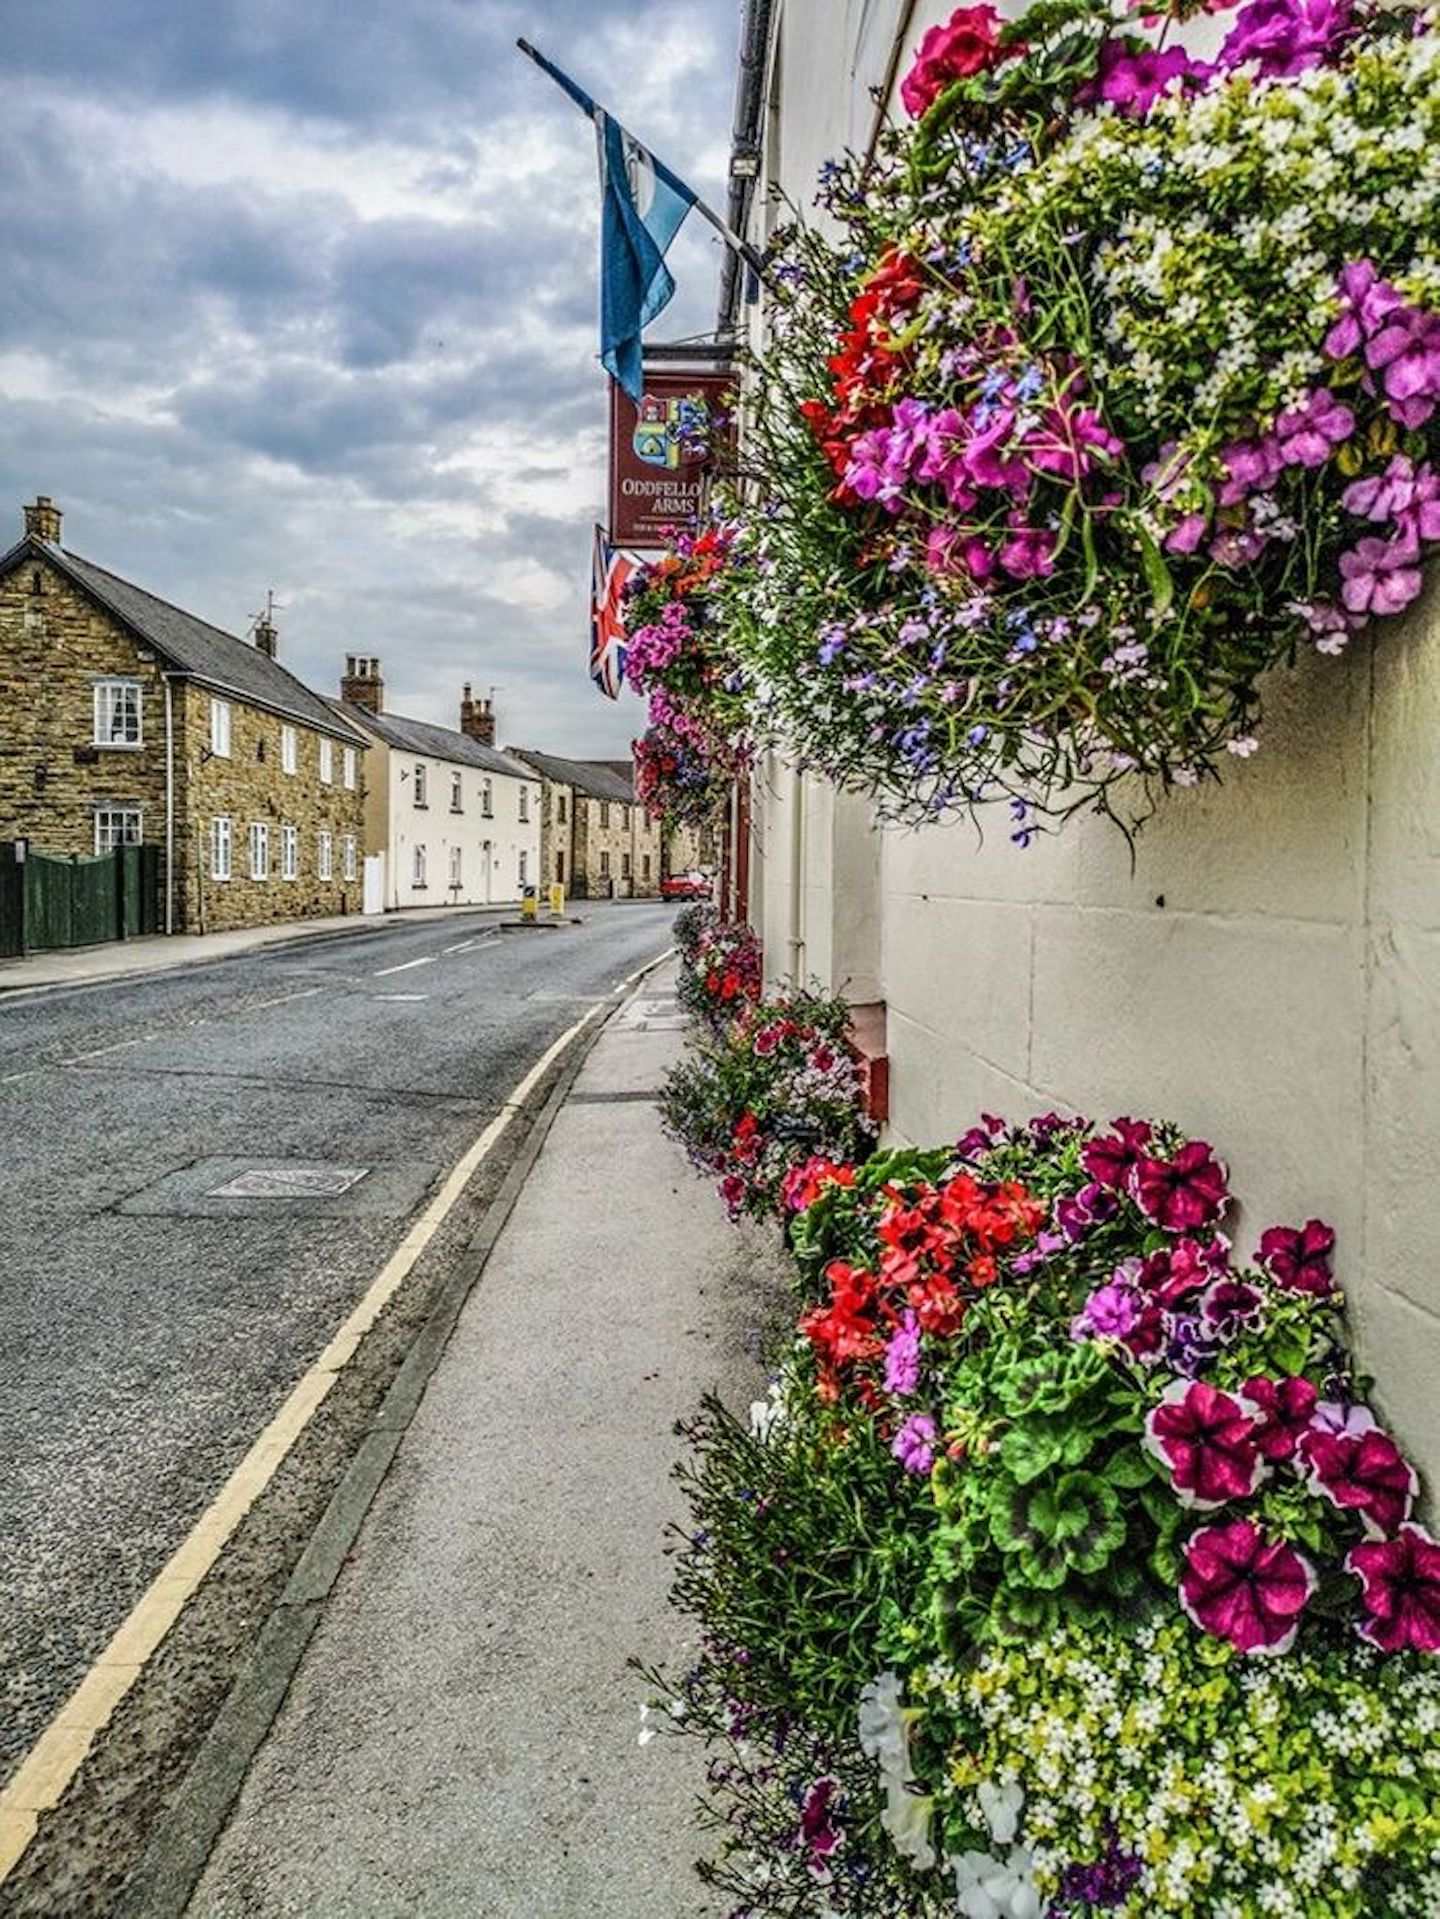 A close up of a flower garden in front of a building at The Oddfellows Arms.